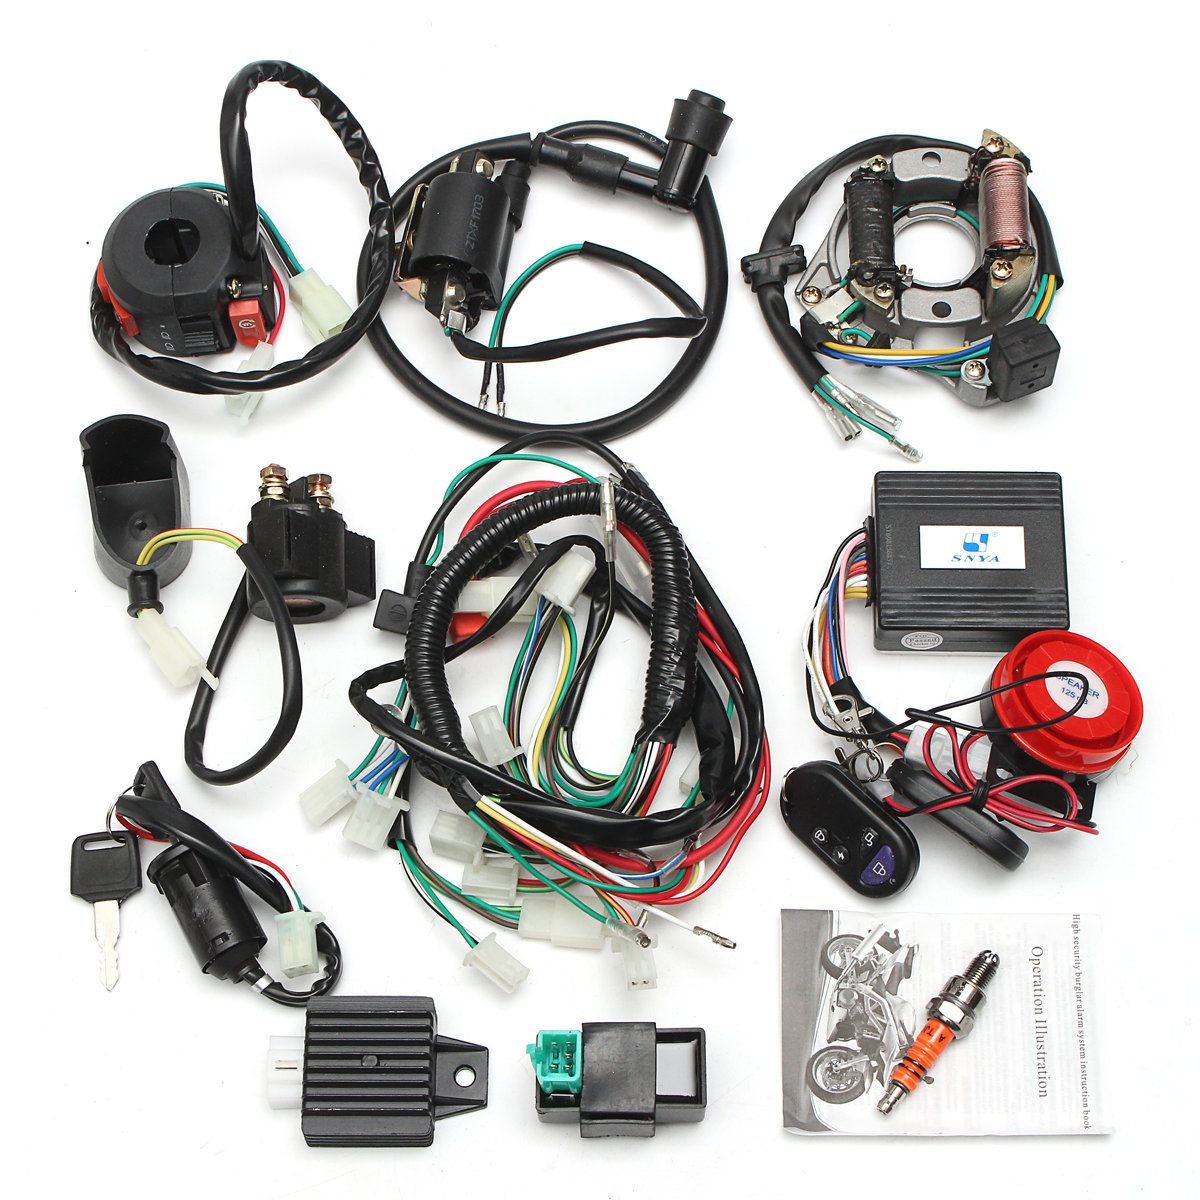 small resolution of alarm system cdi wiring harness remote start switch high security for electric